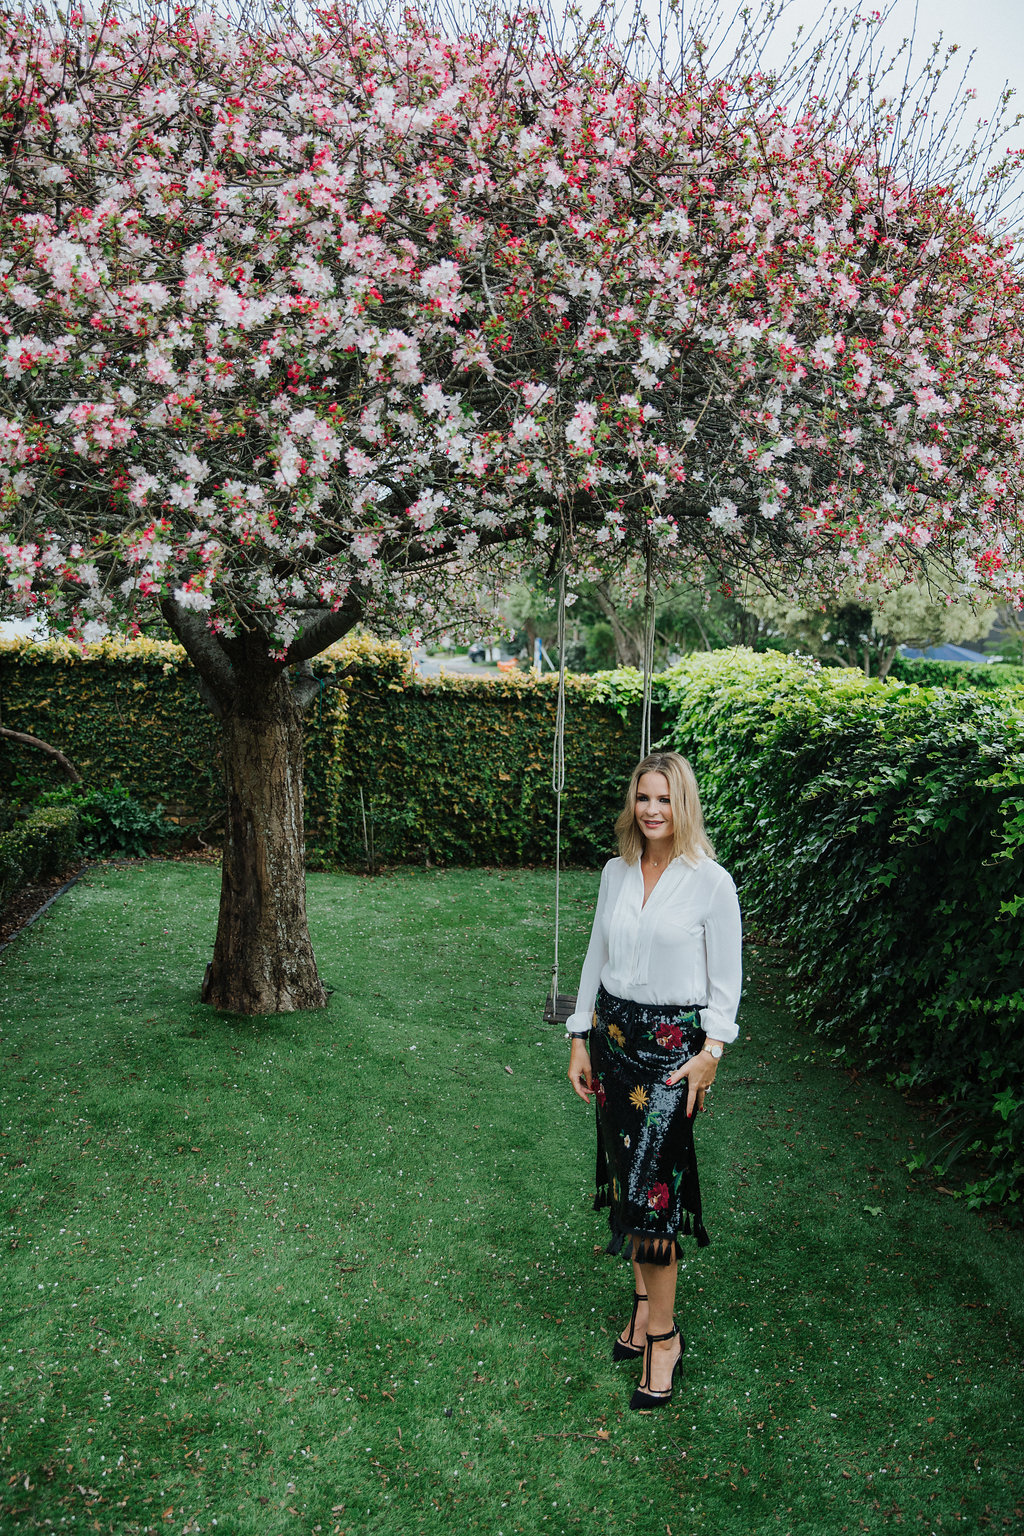 Grove in her garden with her beloved blossom that flowers for only one week of the year.